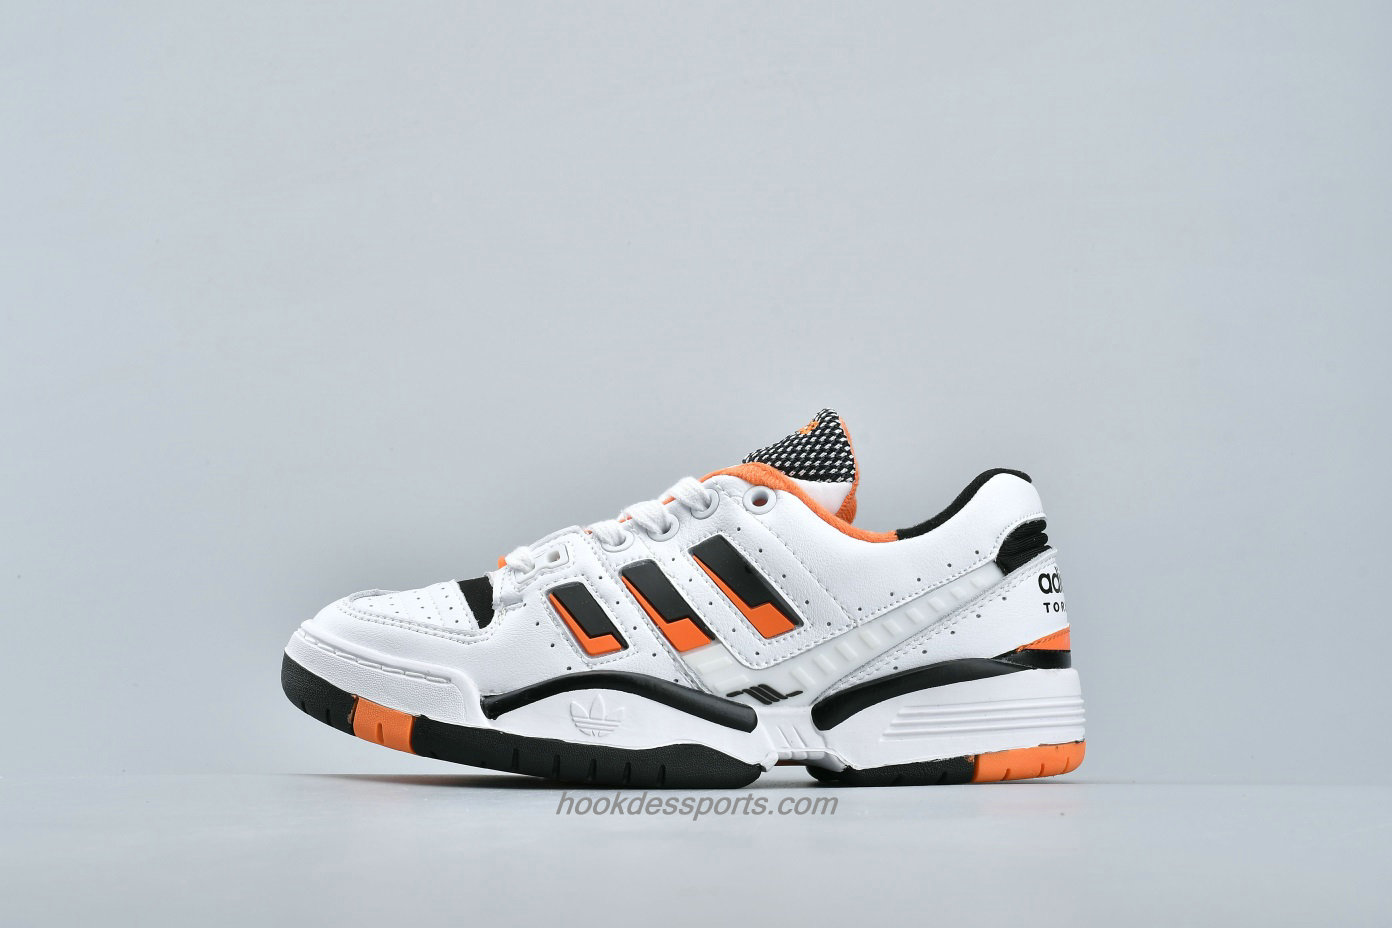 Chaussures Adidas Torsion Edberg Comp EF7752 Blanc / Noir / Orange